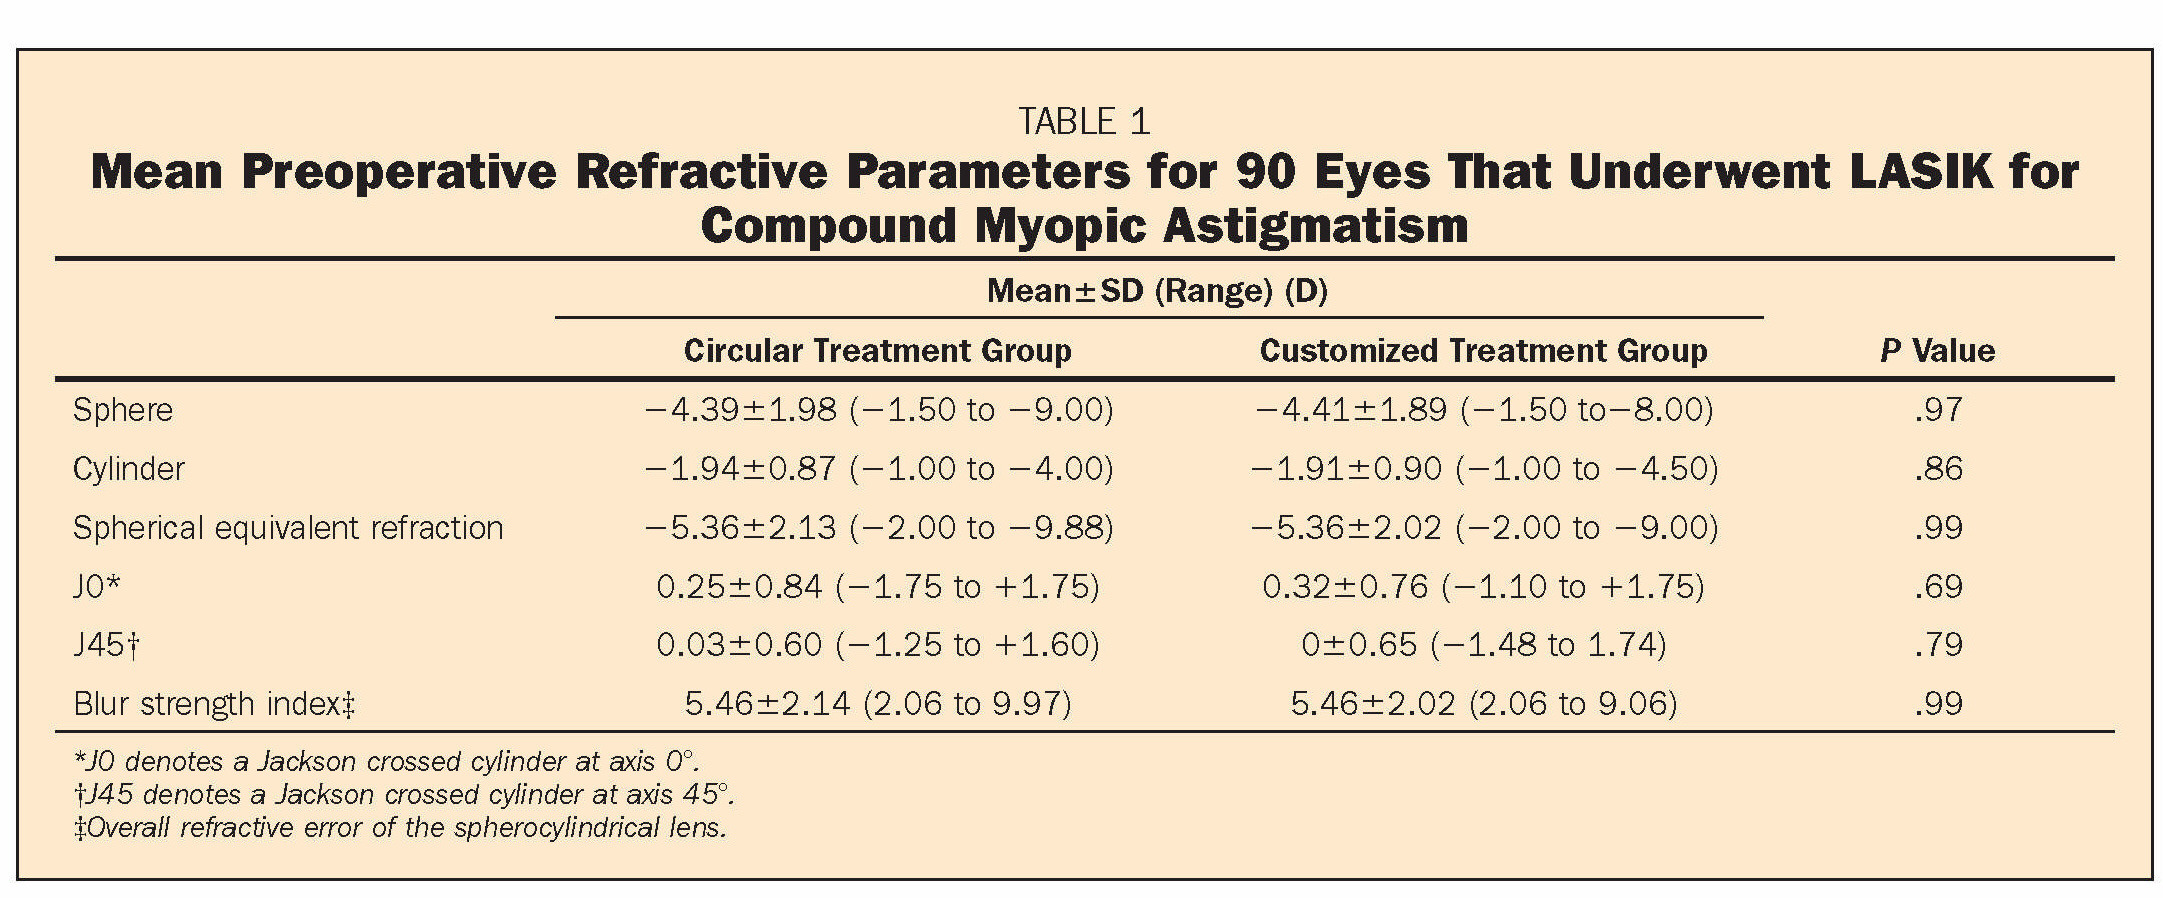 TABLE 1Mean Preoperative Refractive Parameters for 90 Eyes That Underwent LASIK for Compound Myopic Astigmatism